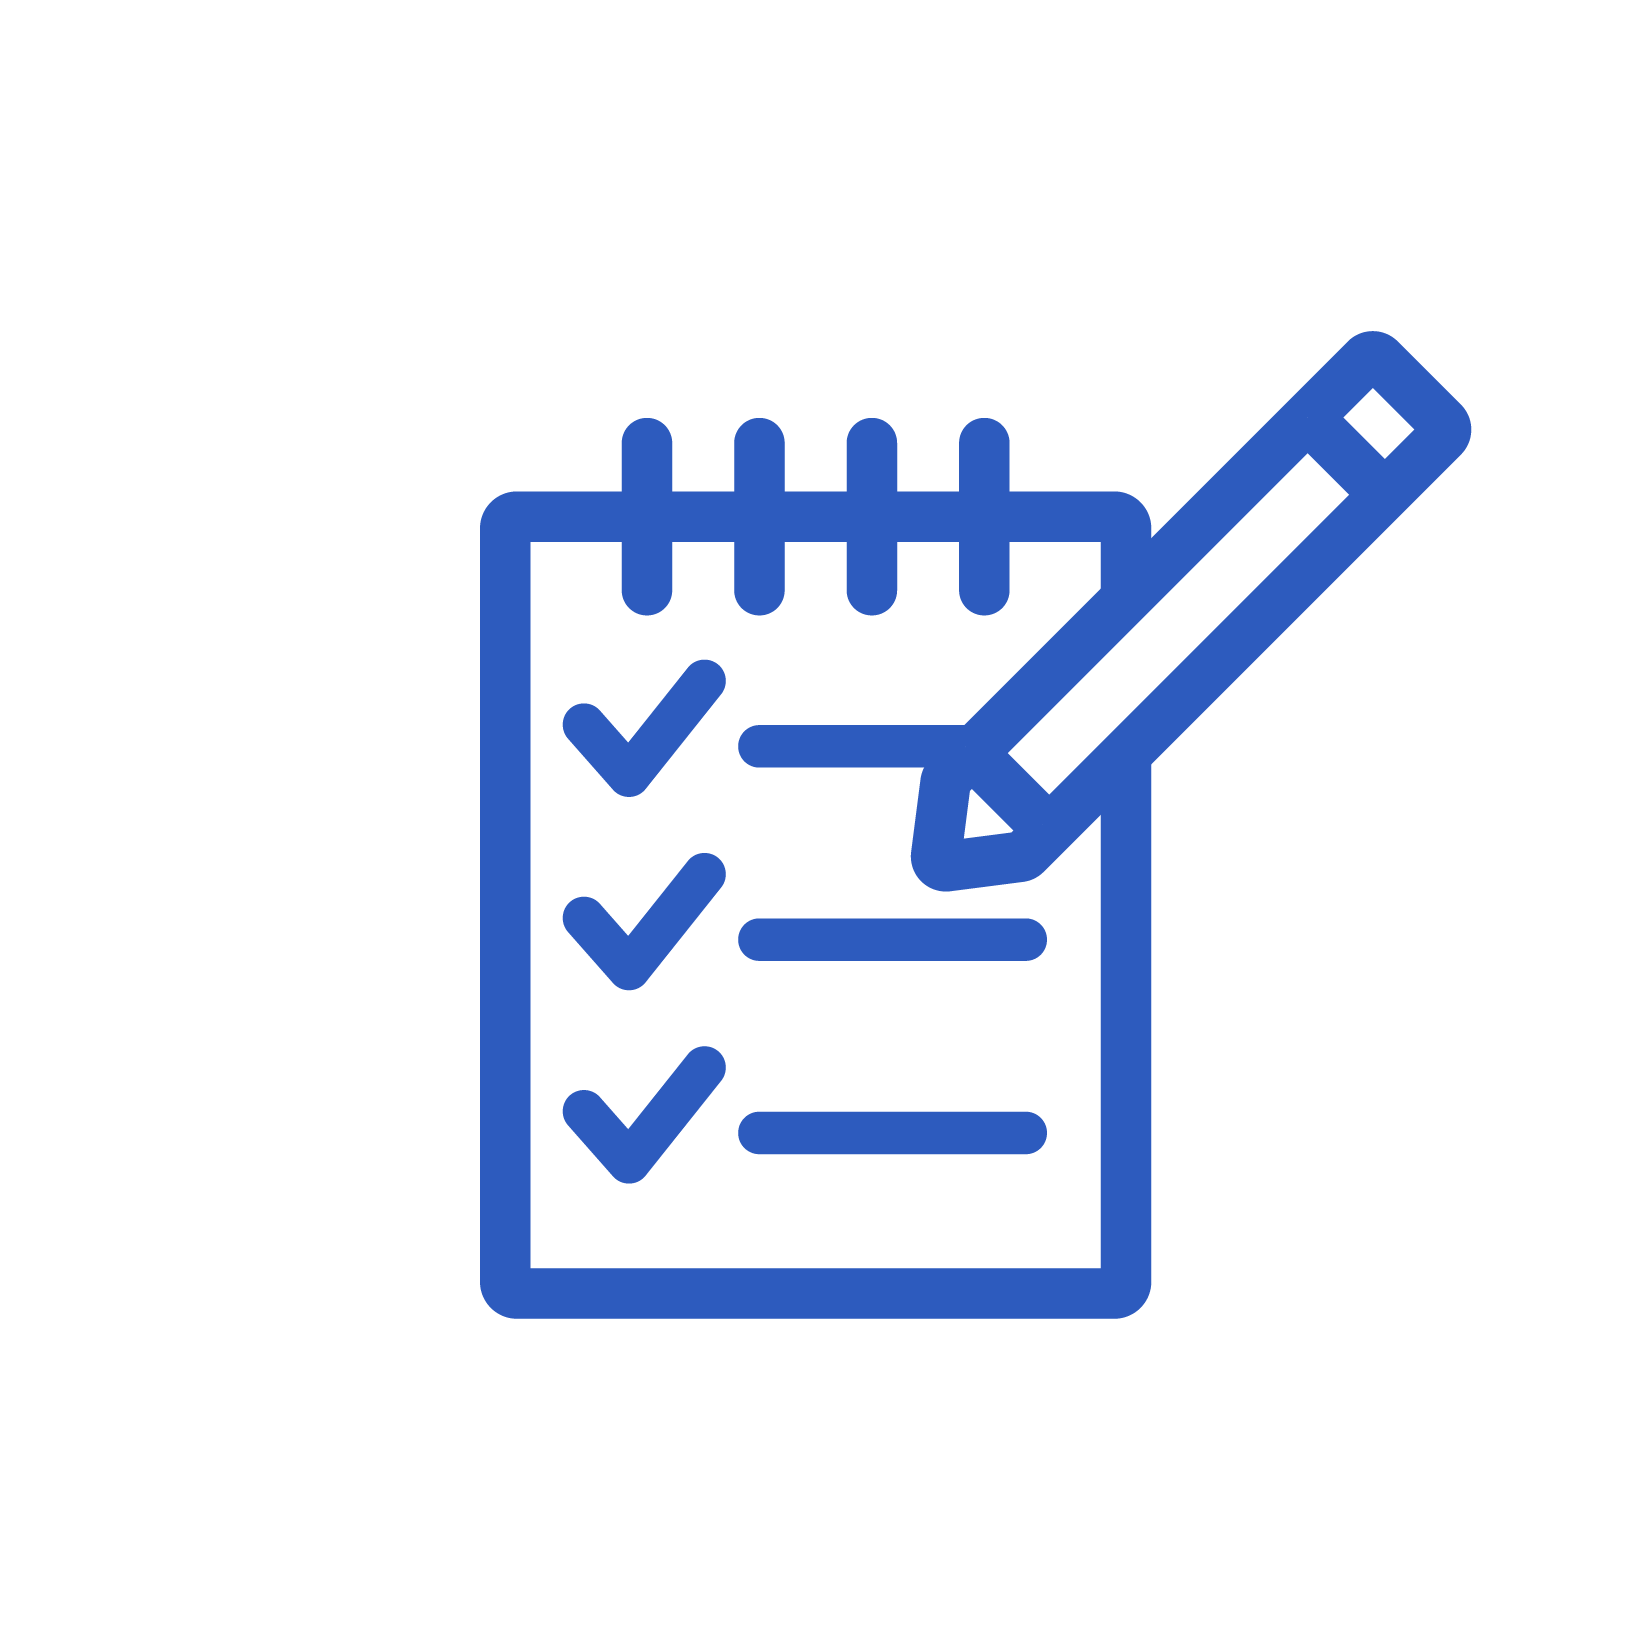 MSC_forms_icon-01.png